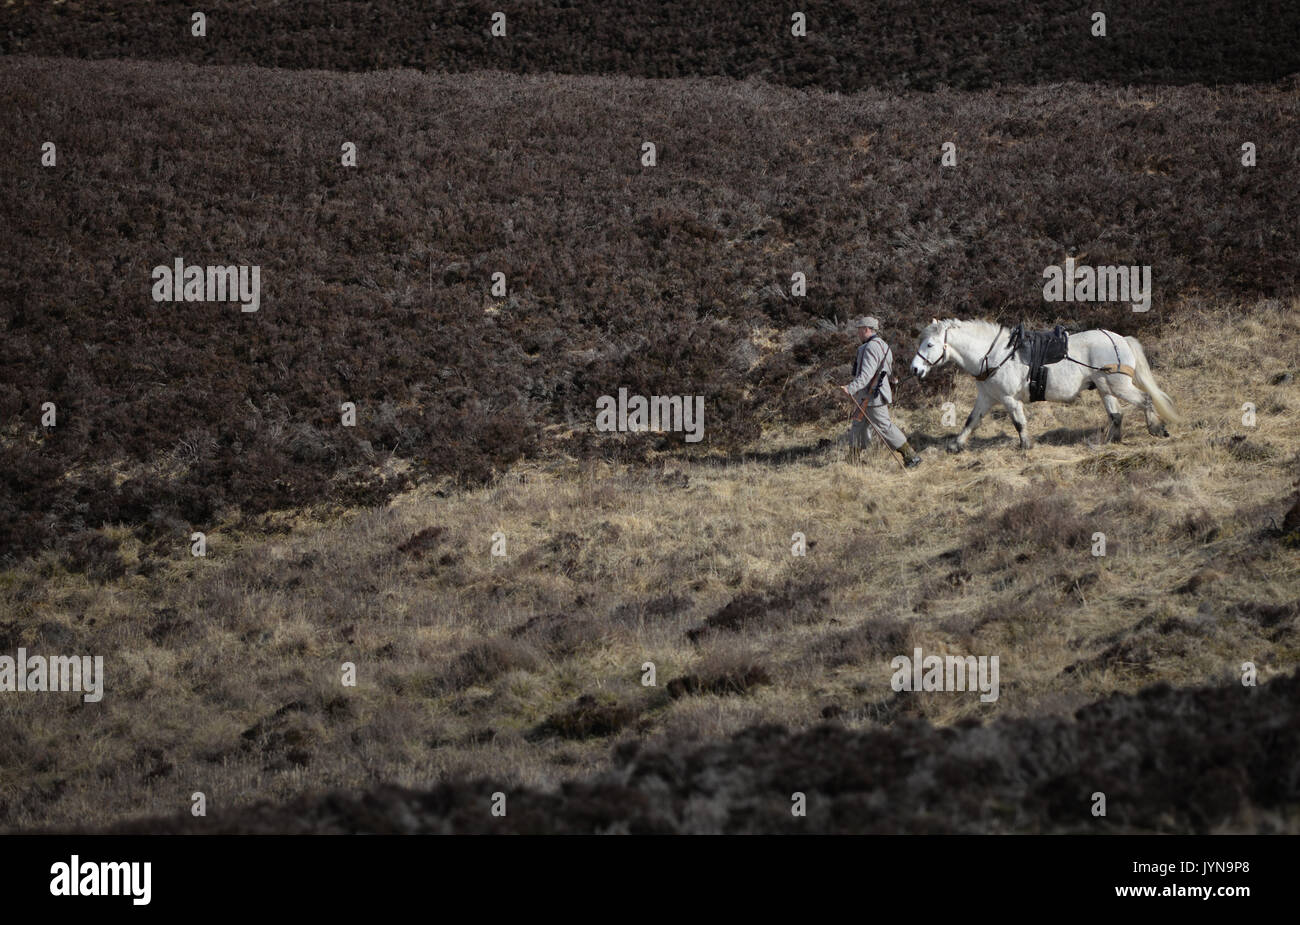 Deer stalking on the Blair Atholl estate in Scotland - Stock Image